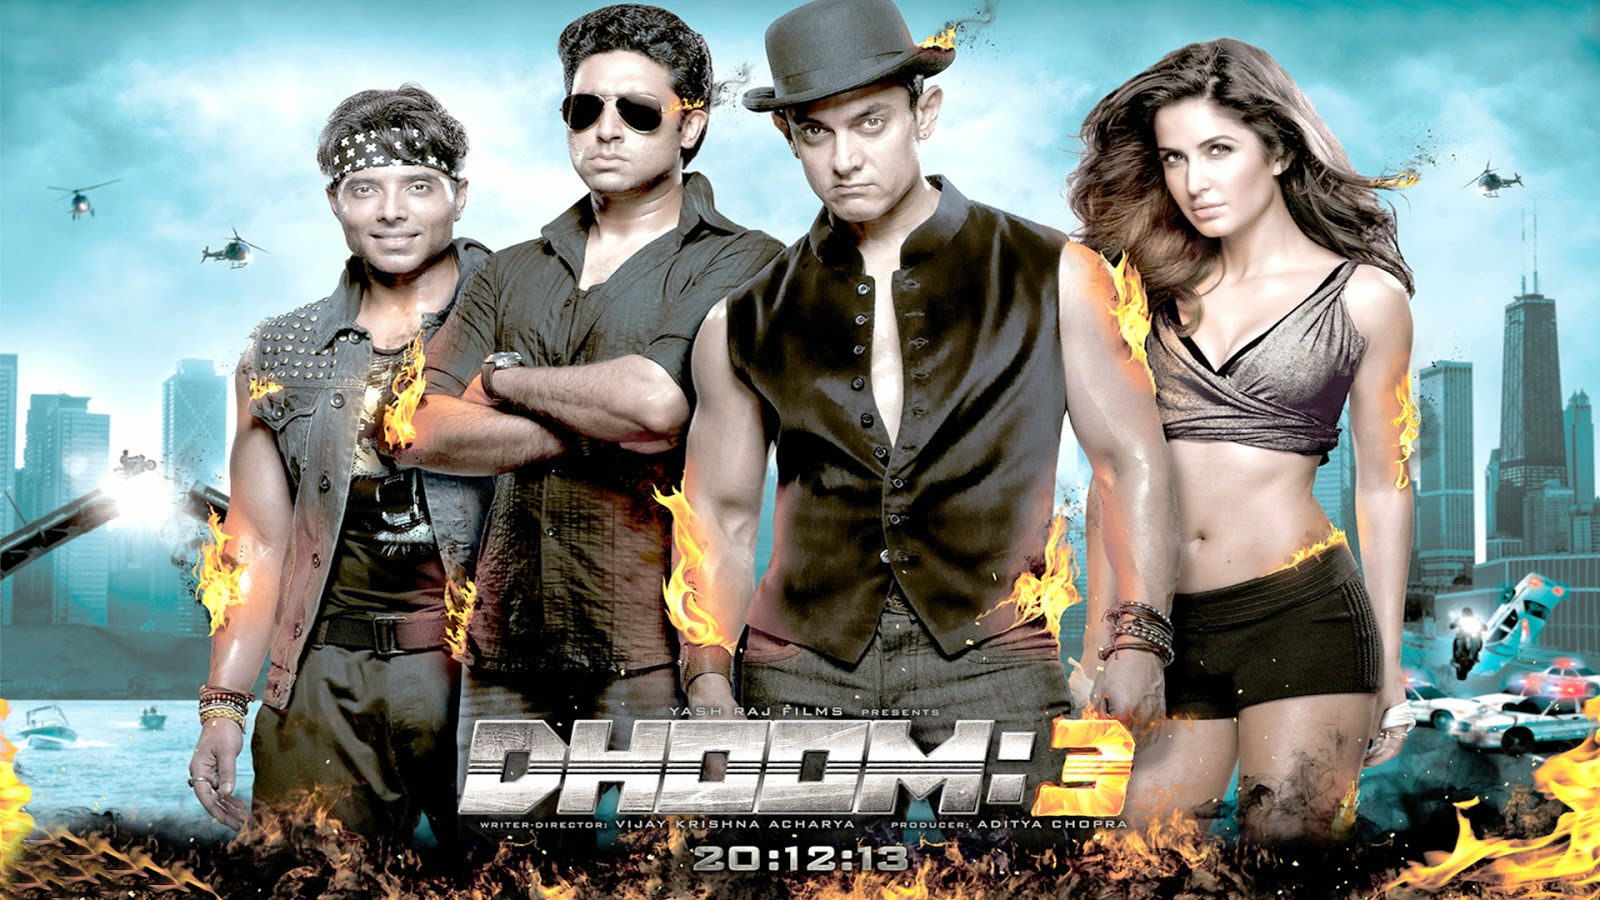 Free Download Dhoom 3 Full Movie Sub Indo Wolivin